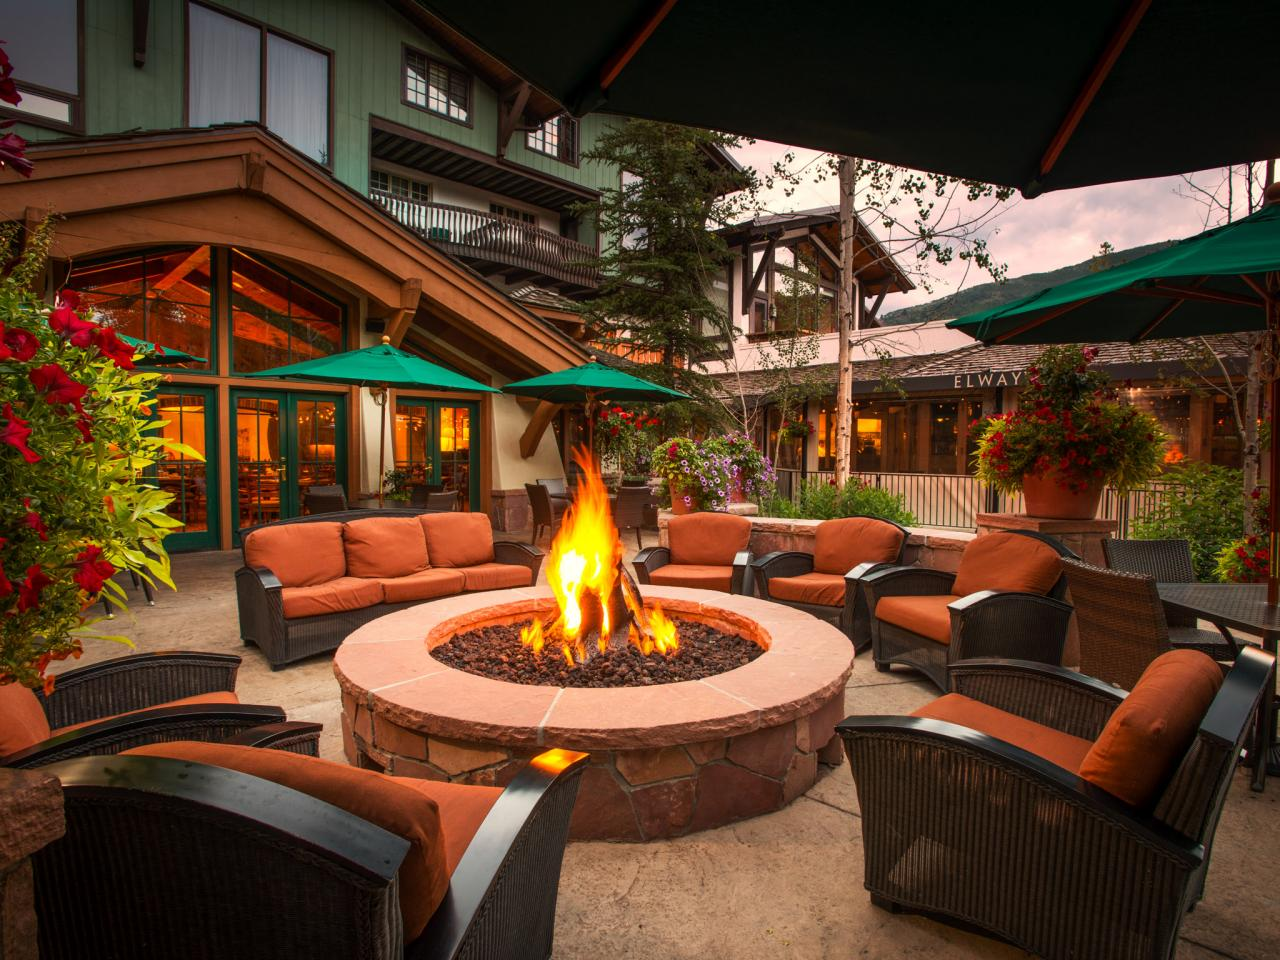 All Around the Firepit